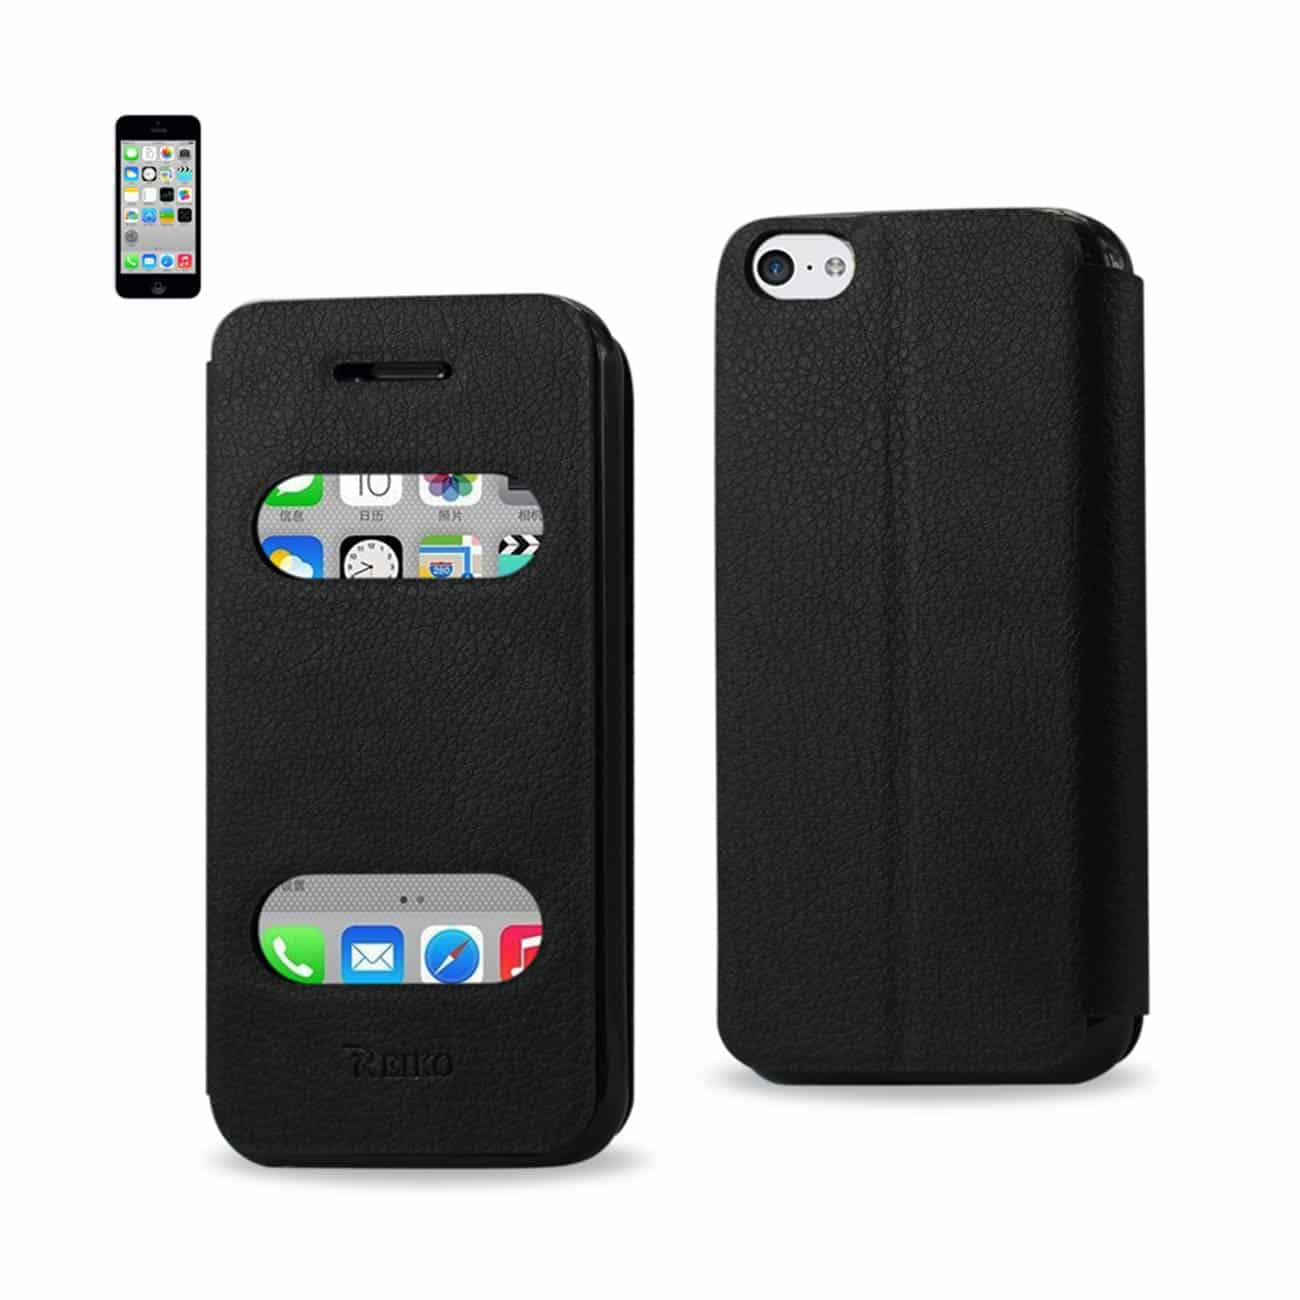 IPHONE 5C WINDOW FLIP FOLIO CASE IN BLACK